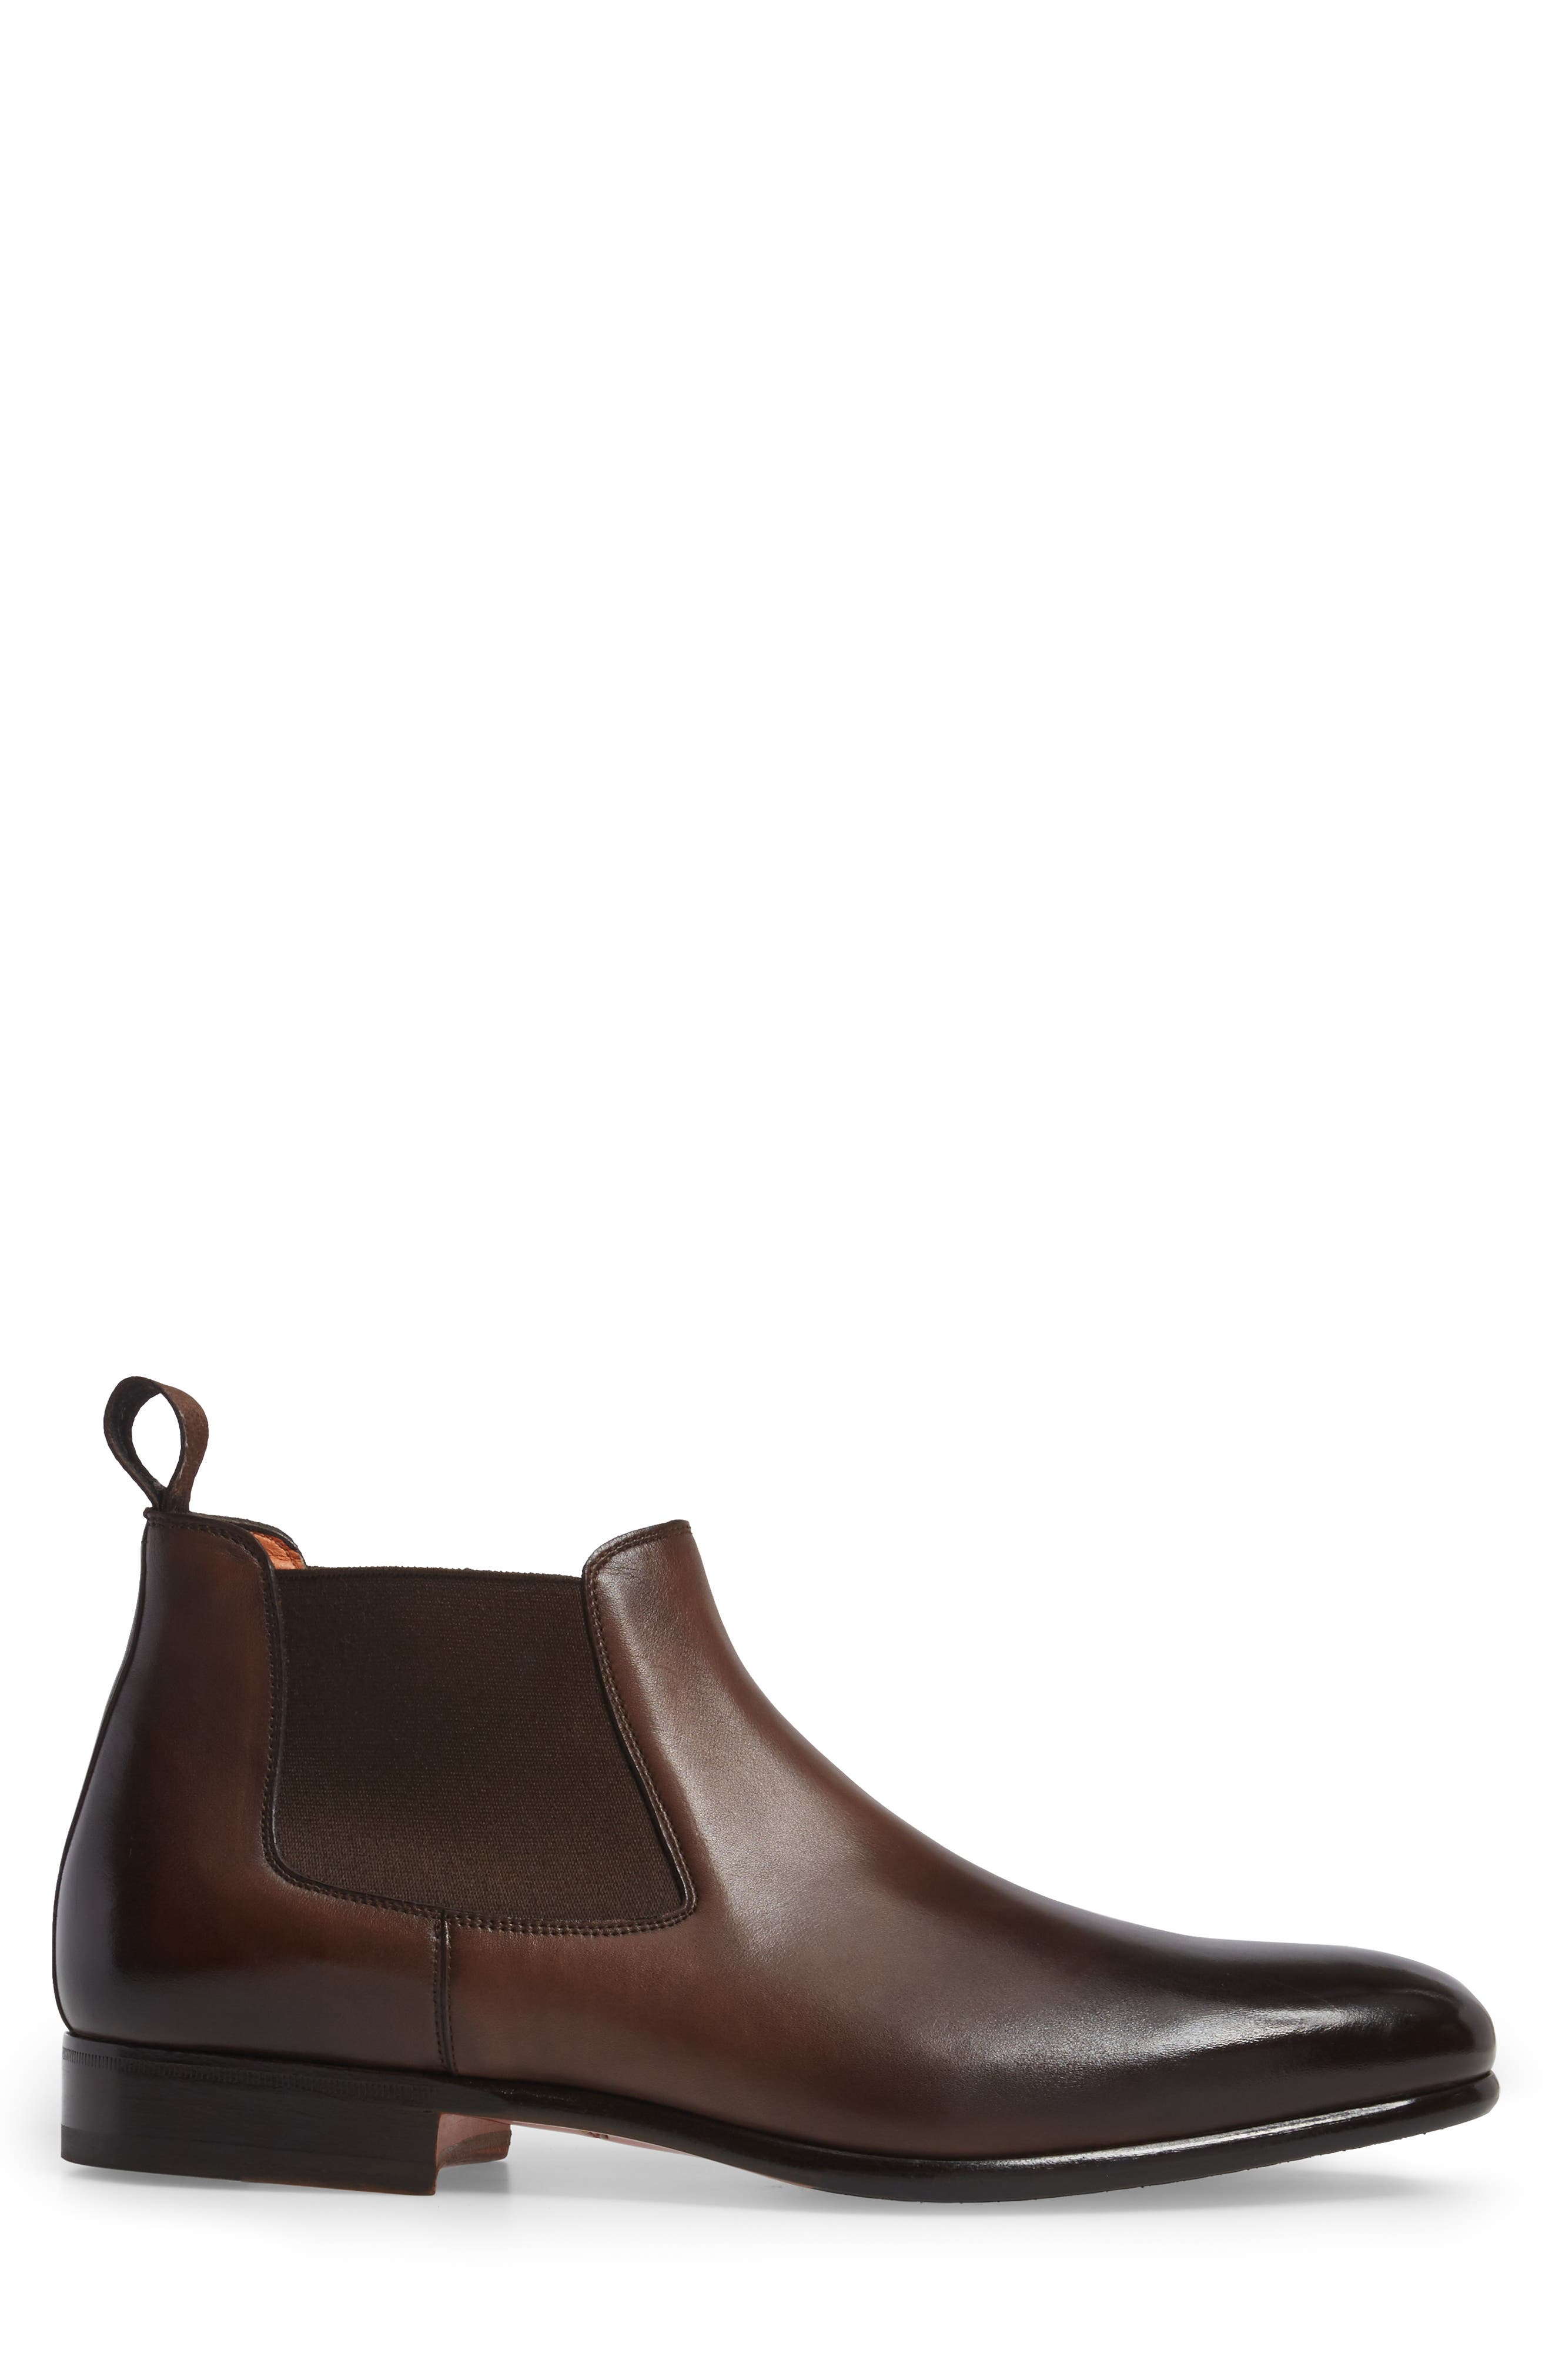 Gunther Chelsea Boot,                             Alternate thumbnail 6, color,